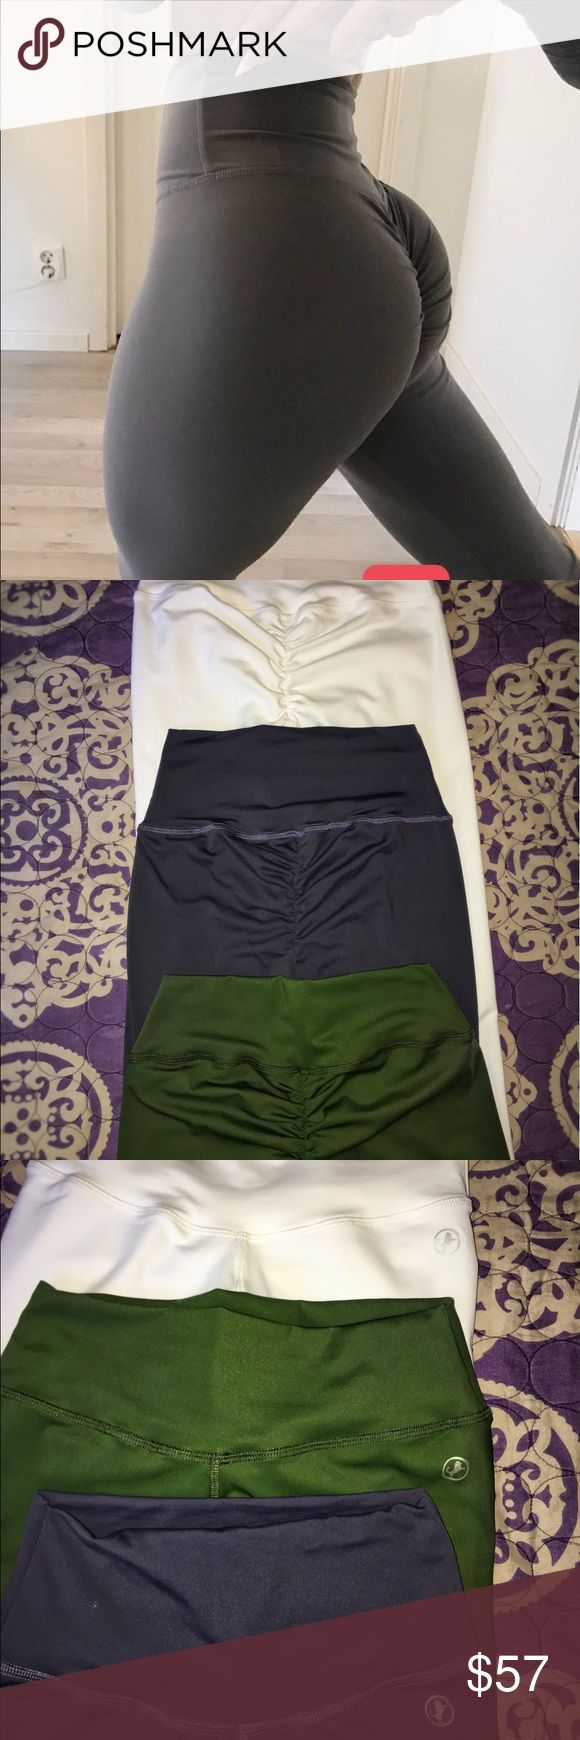 Workout leggings booty Scrunch Booty heaven !!!! In these!   Abs2bFitnessapperal ORIGINAL PRICE 70-75$ plus tax and shipping. But get yours NOW for 55$ only!   Brand new Abs2bFitness Booty Scrunch leggings.   Army green -Size Medium 55$ Moon Grey: Size Medium 55$ White: Size White 55$ Visit their website and see that they are 70$ retail plus shipping. But hey yours now for 55$.  They are high waisted and make your booty look very plump and round. They hug your body perfectly. Very soft…